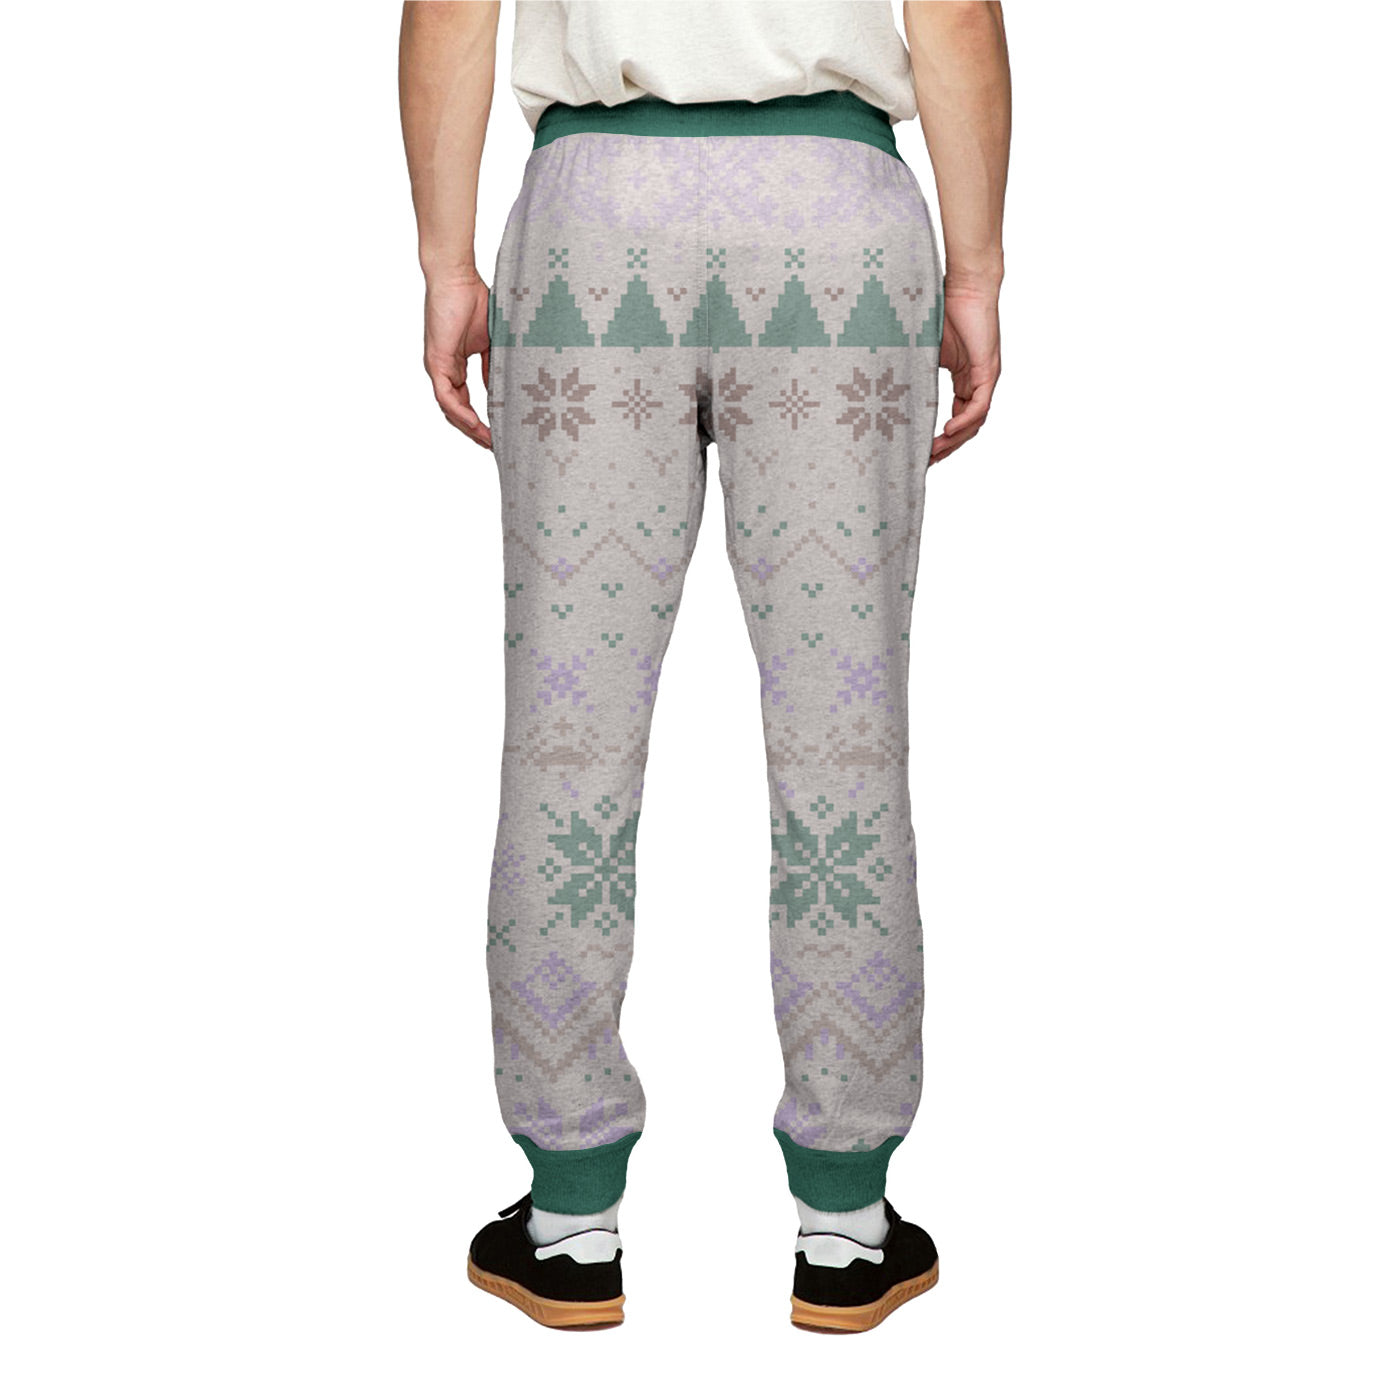 Santa's Rex Sweatpants